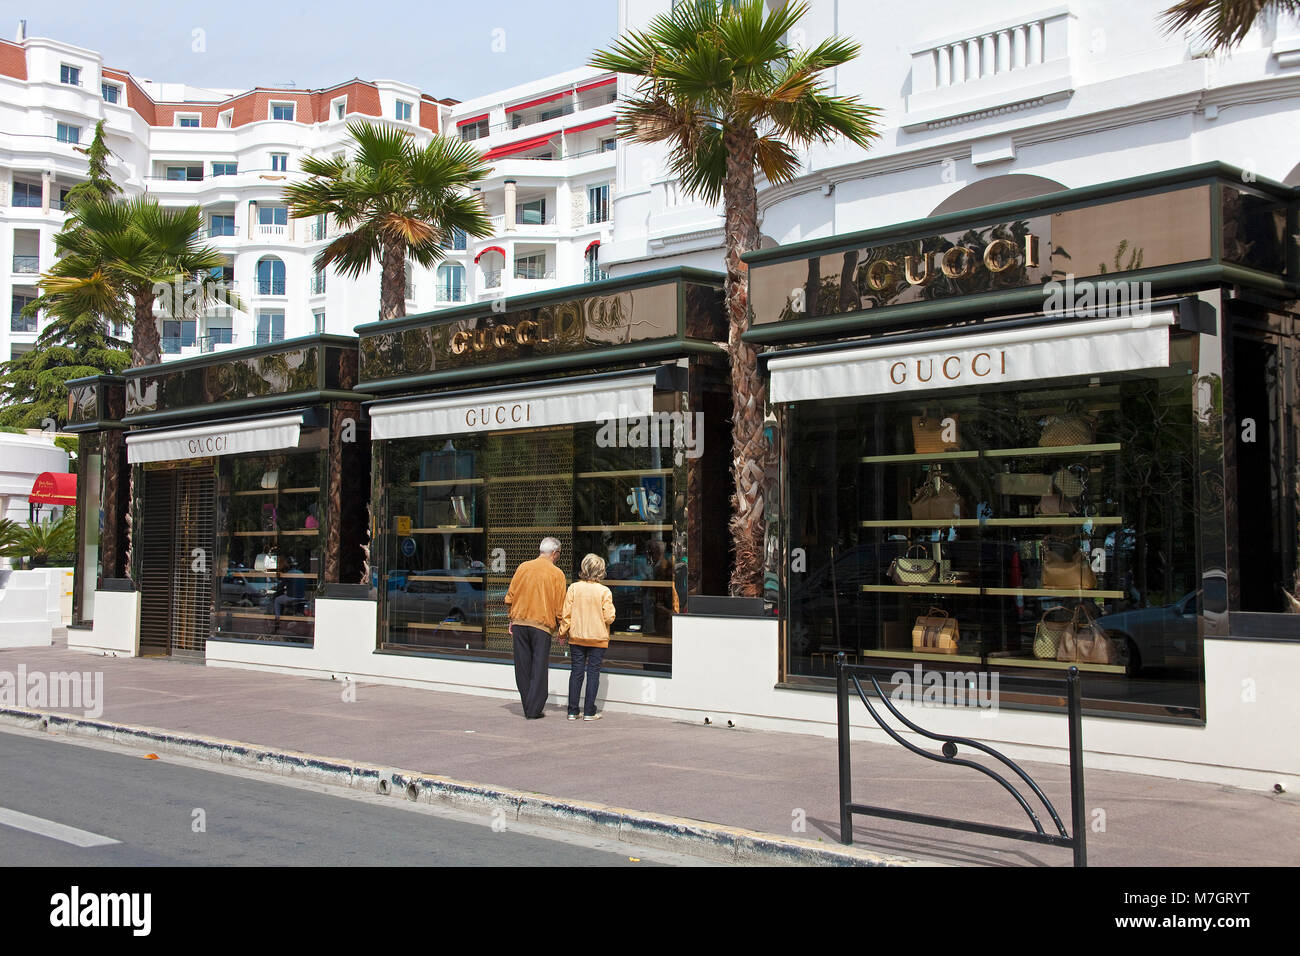 Gucci shop at the Hotel Barriere Le Majestic, Cannes, french riviera, South  France, France, Europe 1aef40d7a72